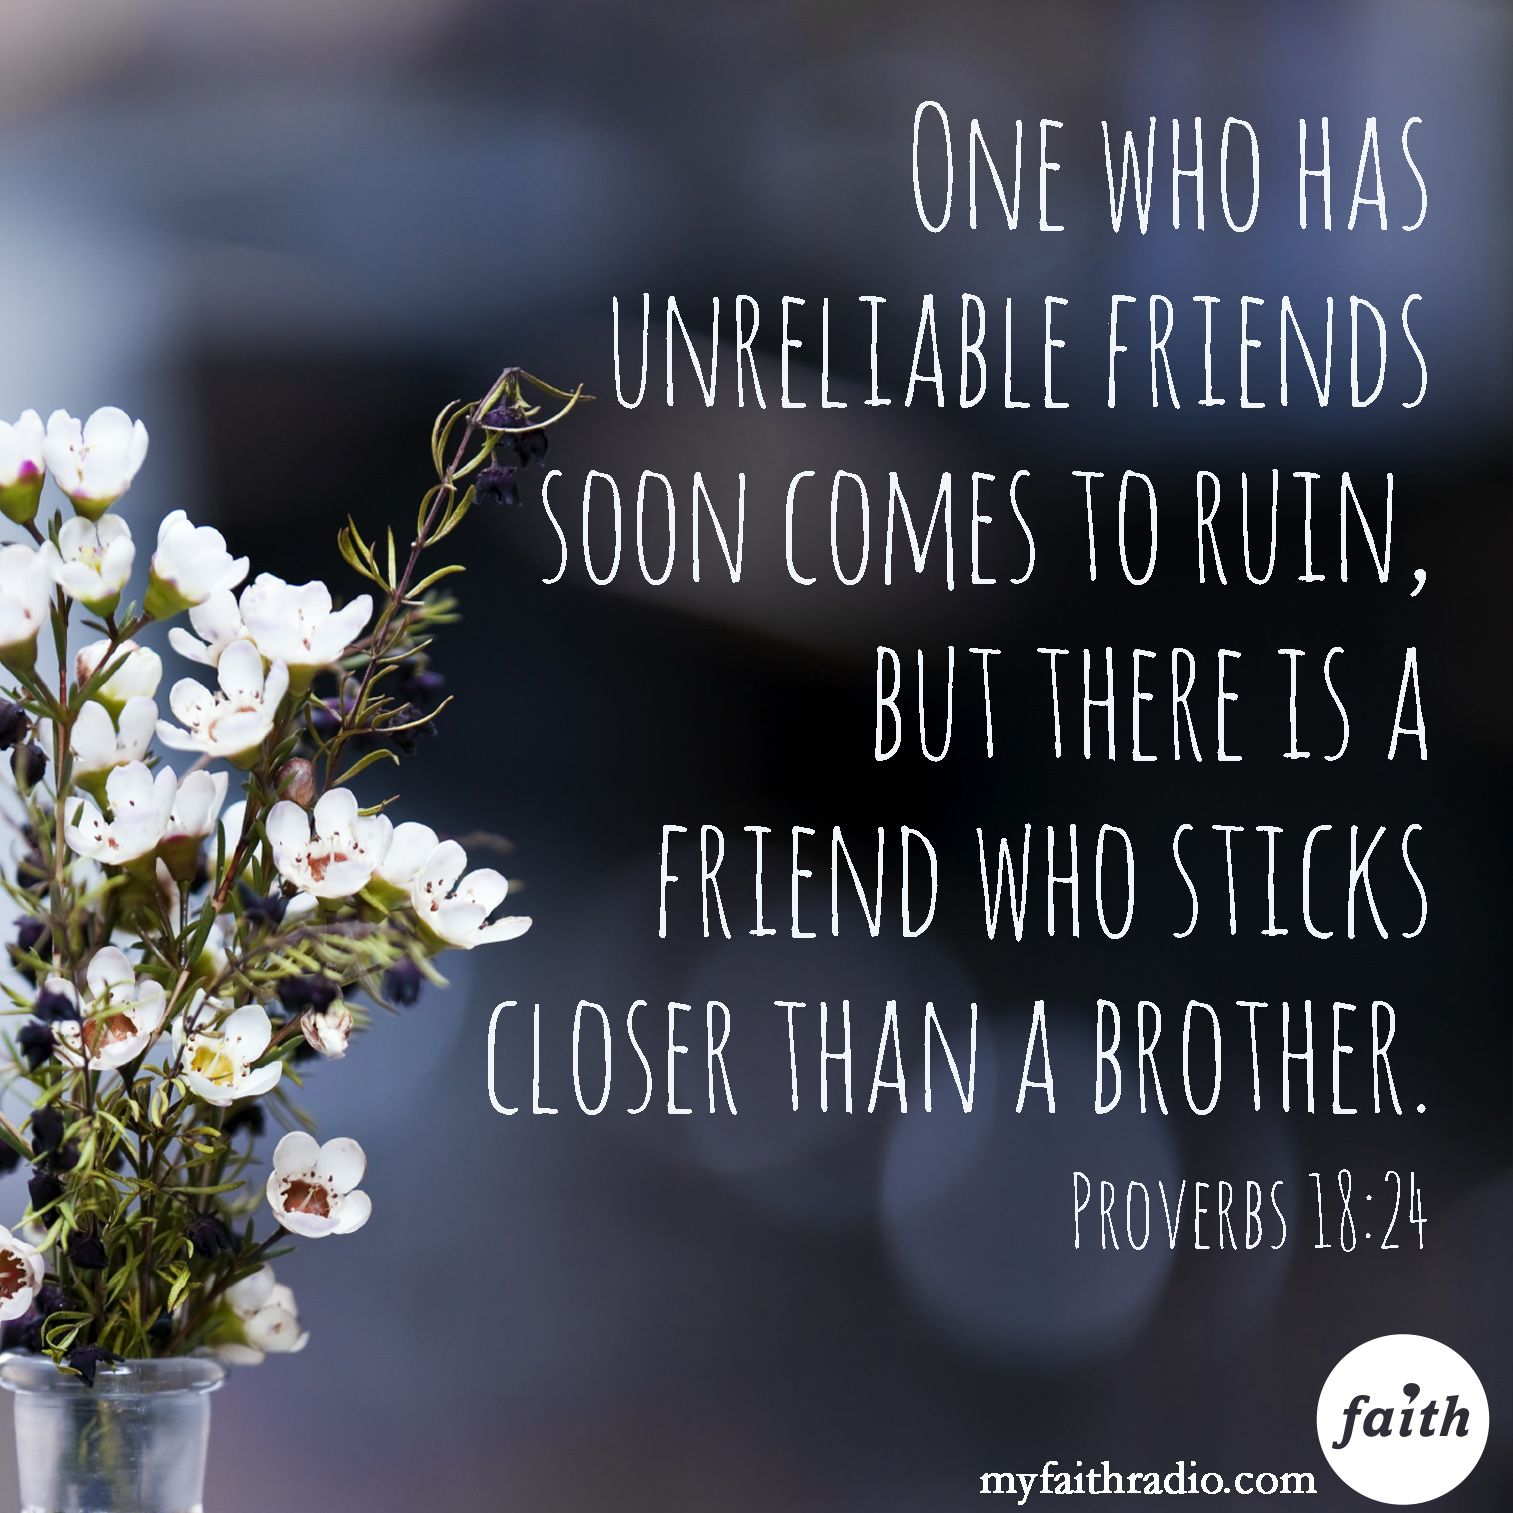 e who has unreliable friends soon es to ruin but there is a friend who